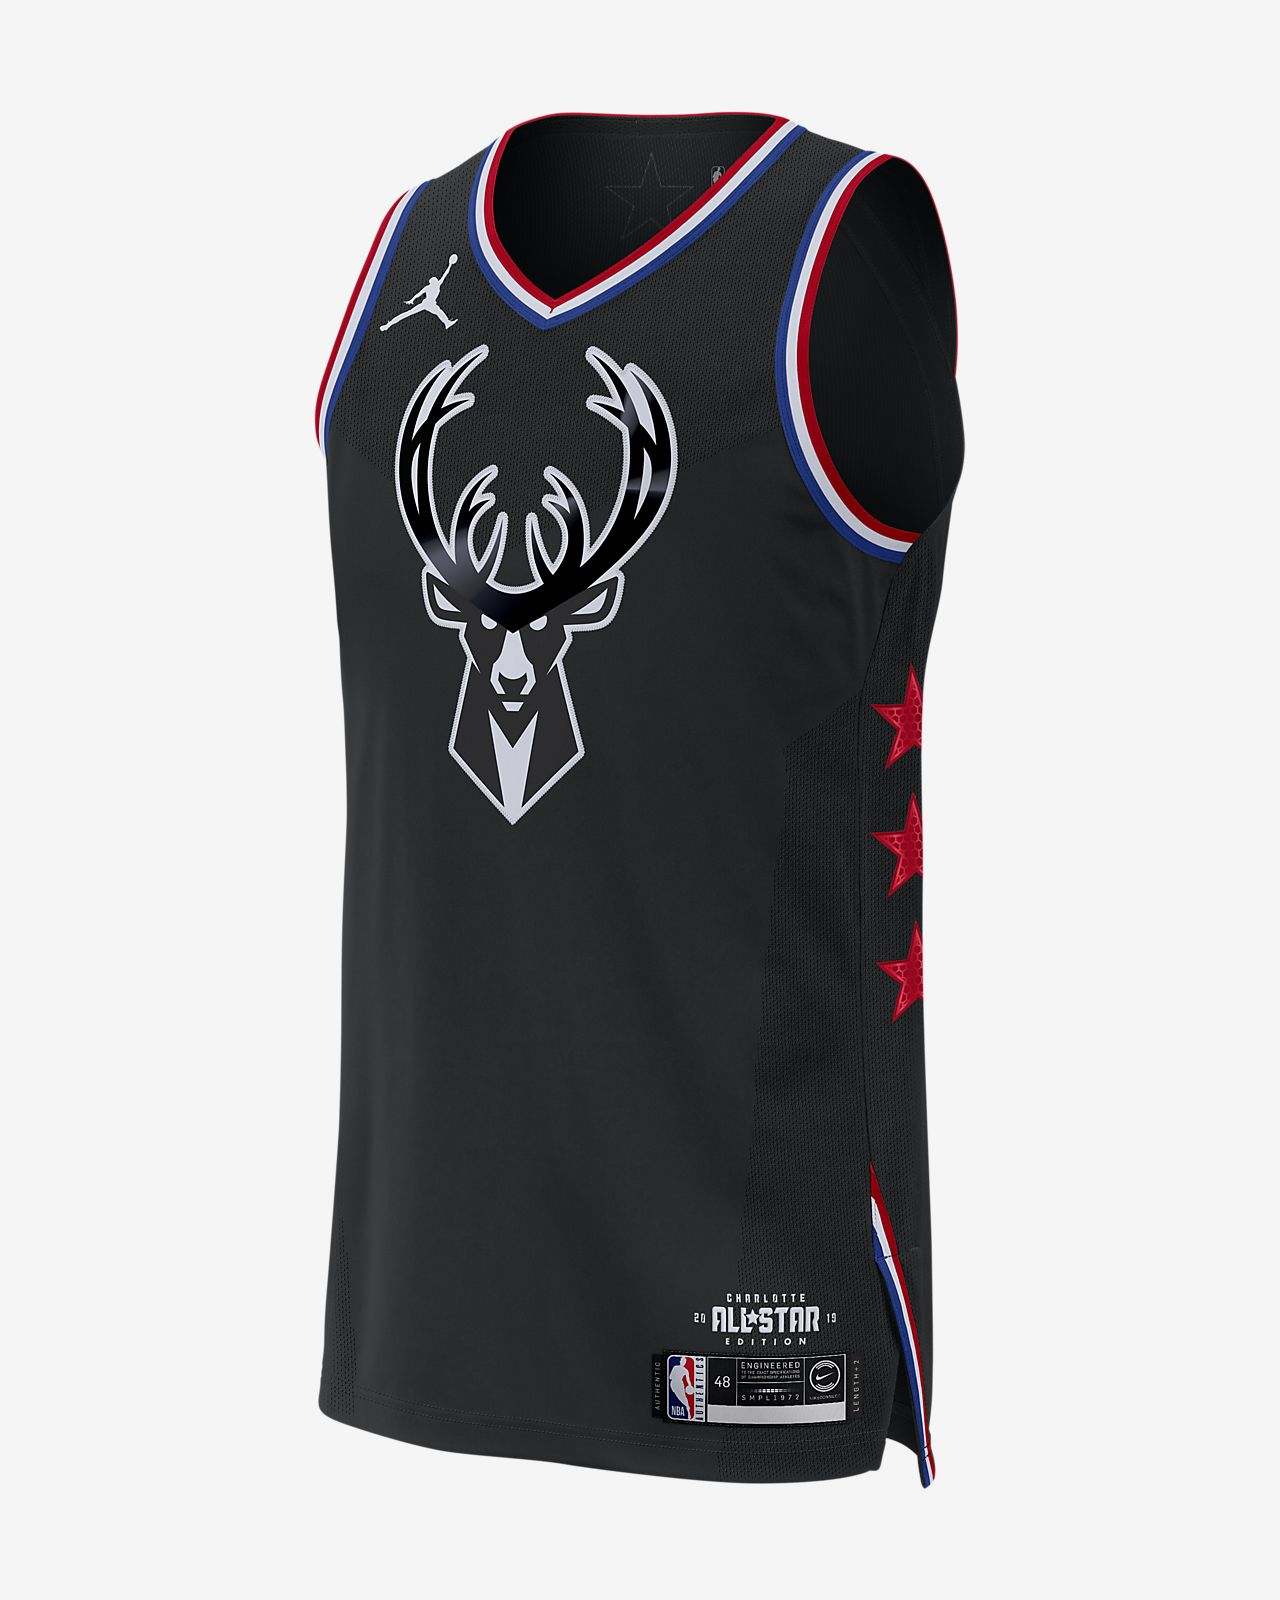 Giannis Antetokounmpo All-Star Edition Authentic Men's Jordan NBA Connected Jersey